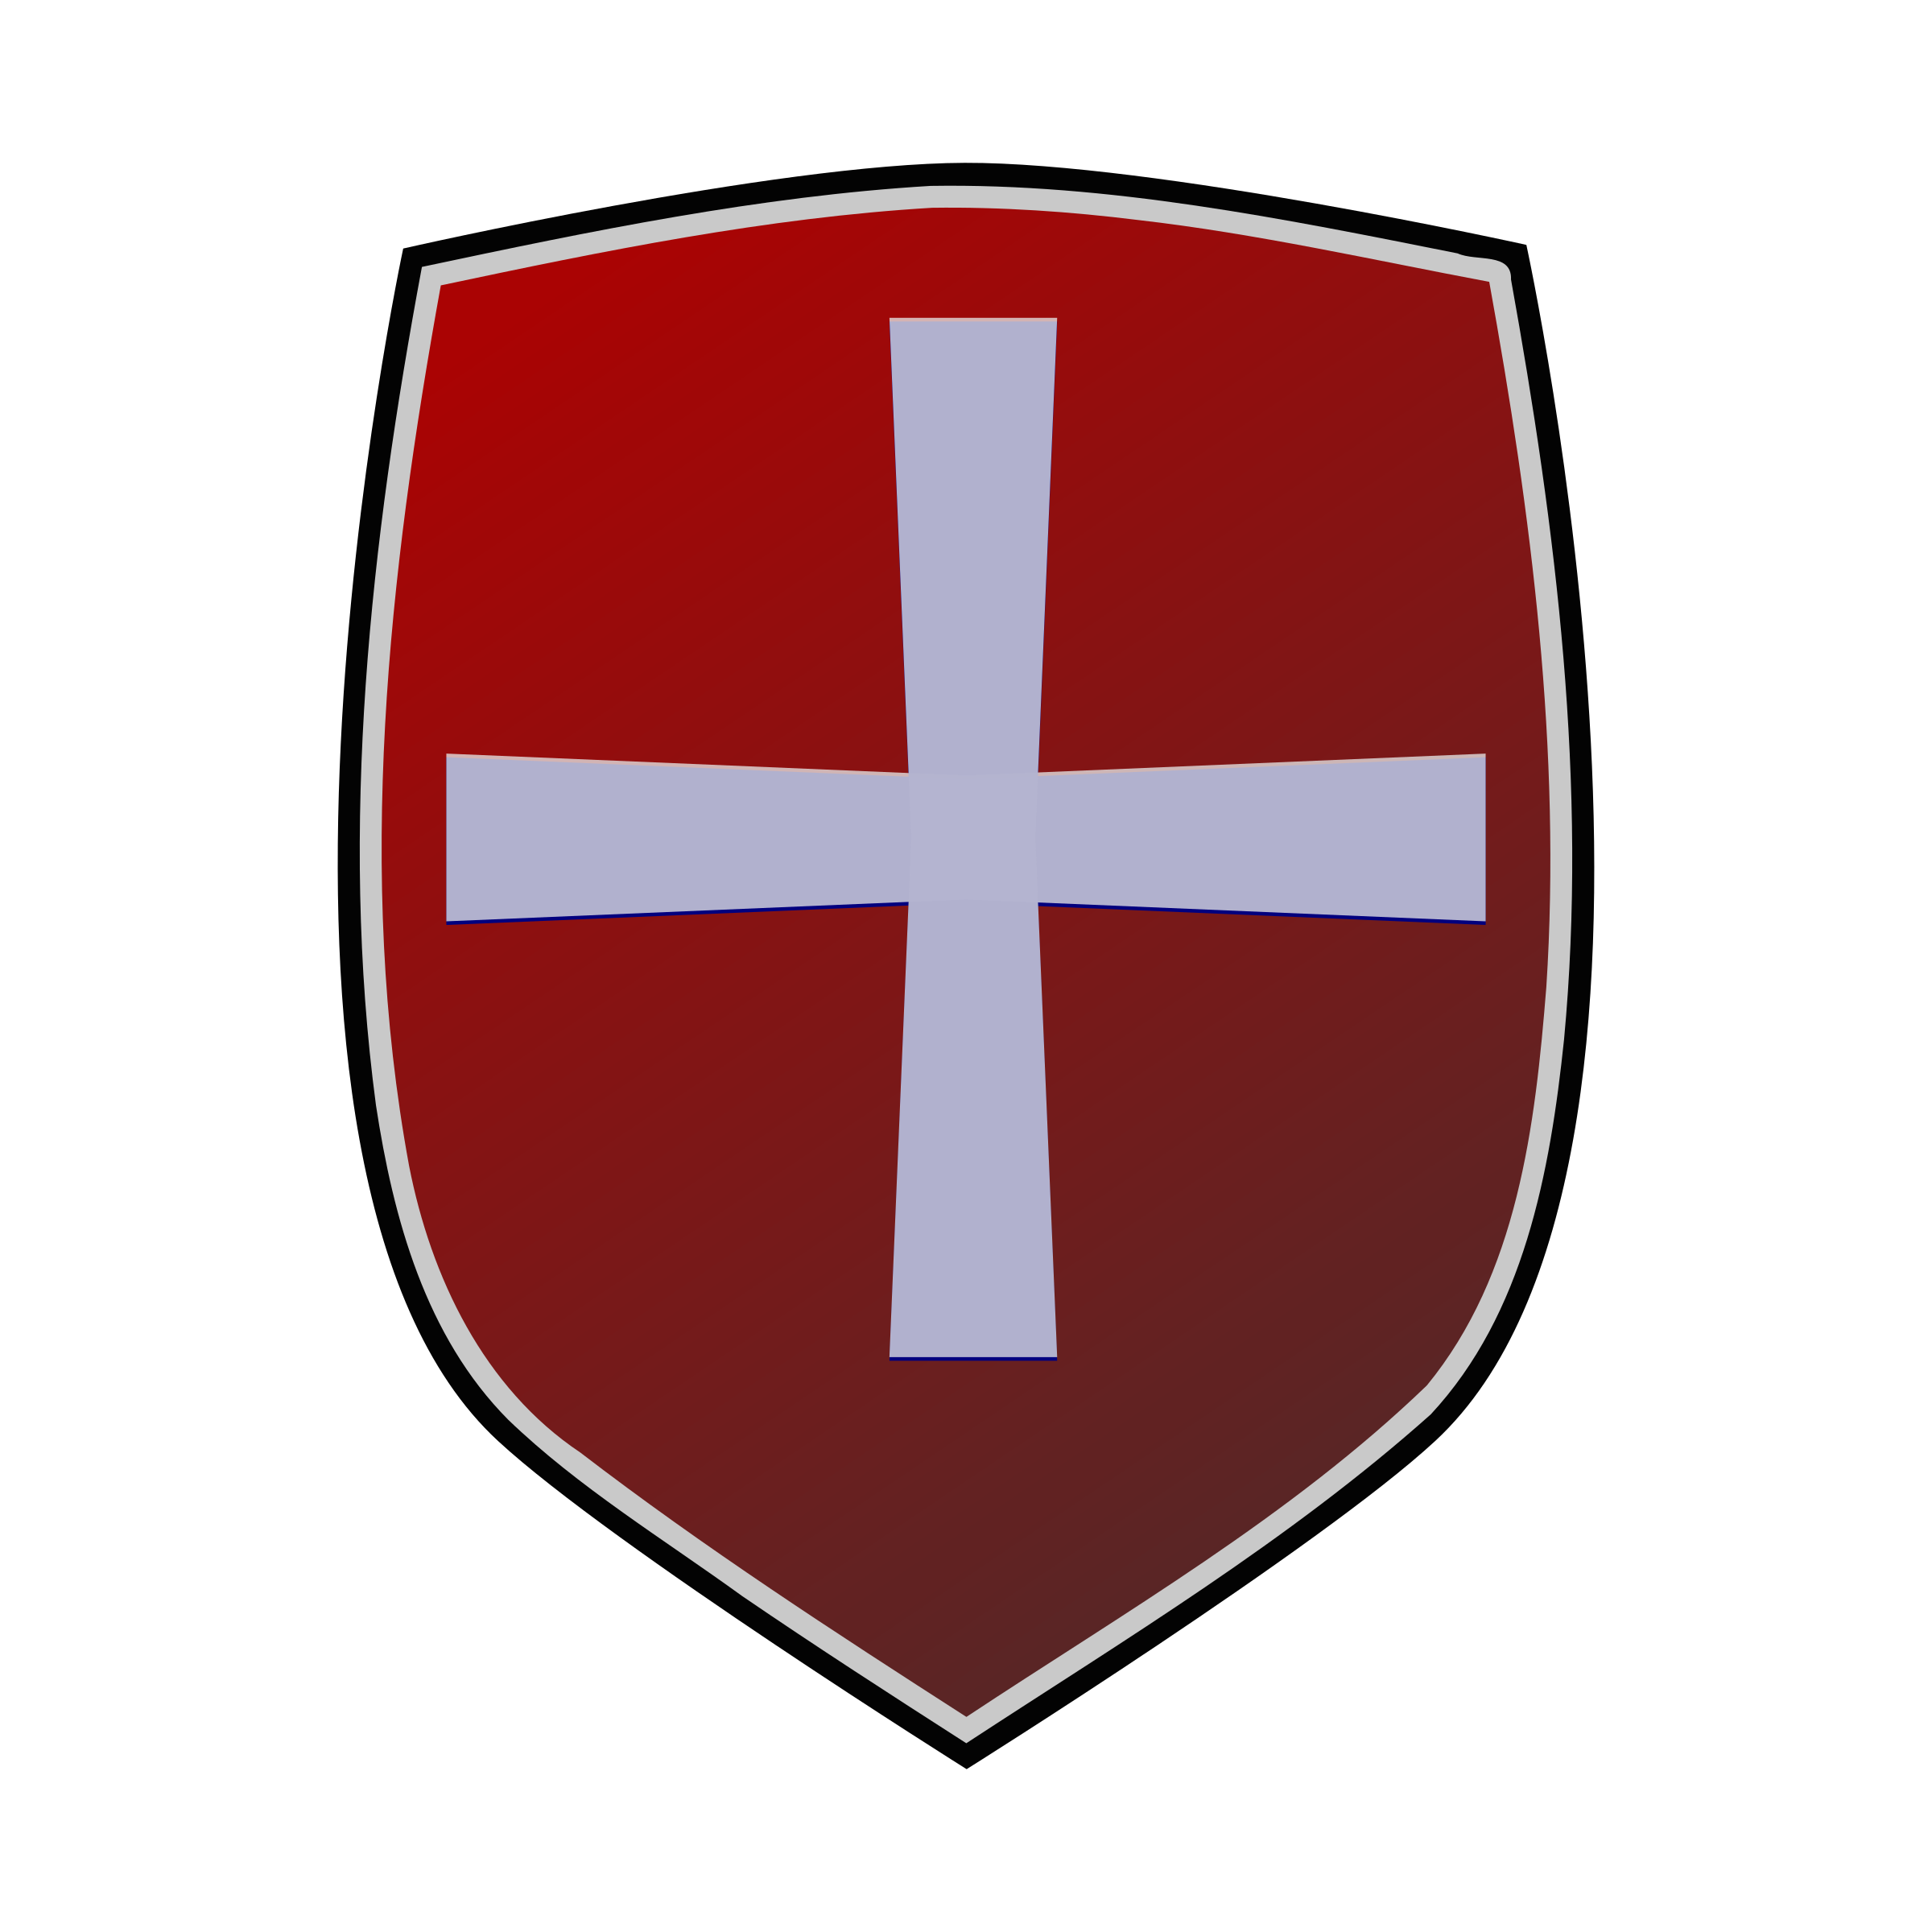 Red big image png. Clipart shield cross